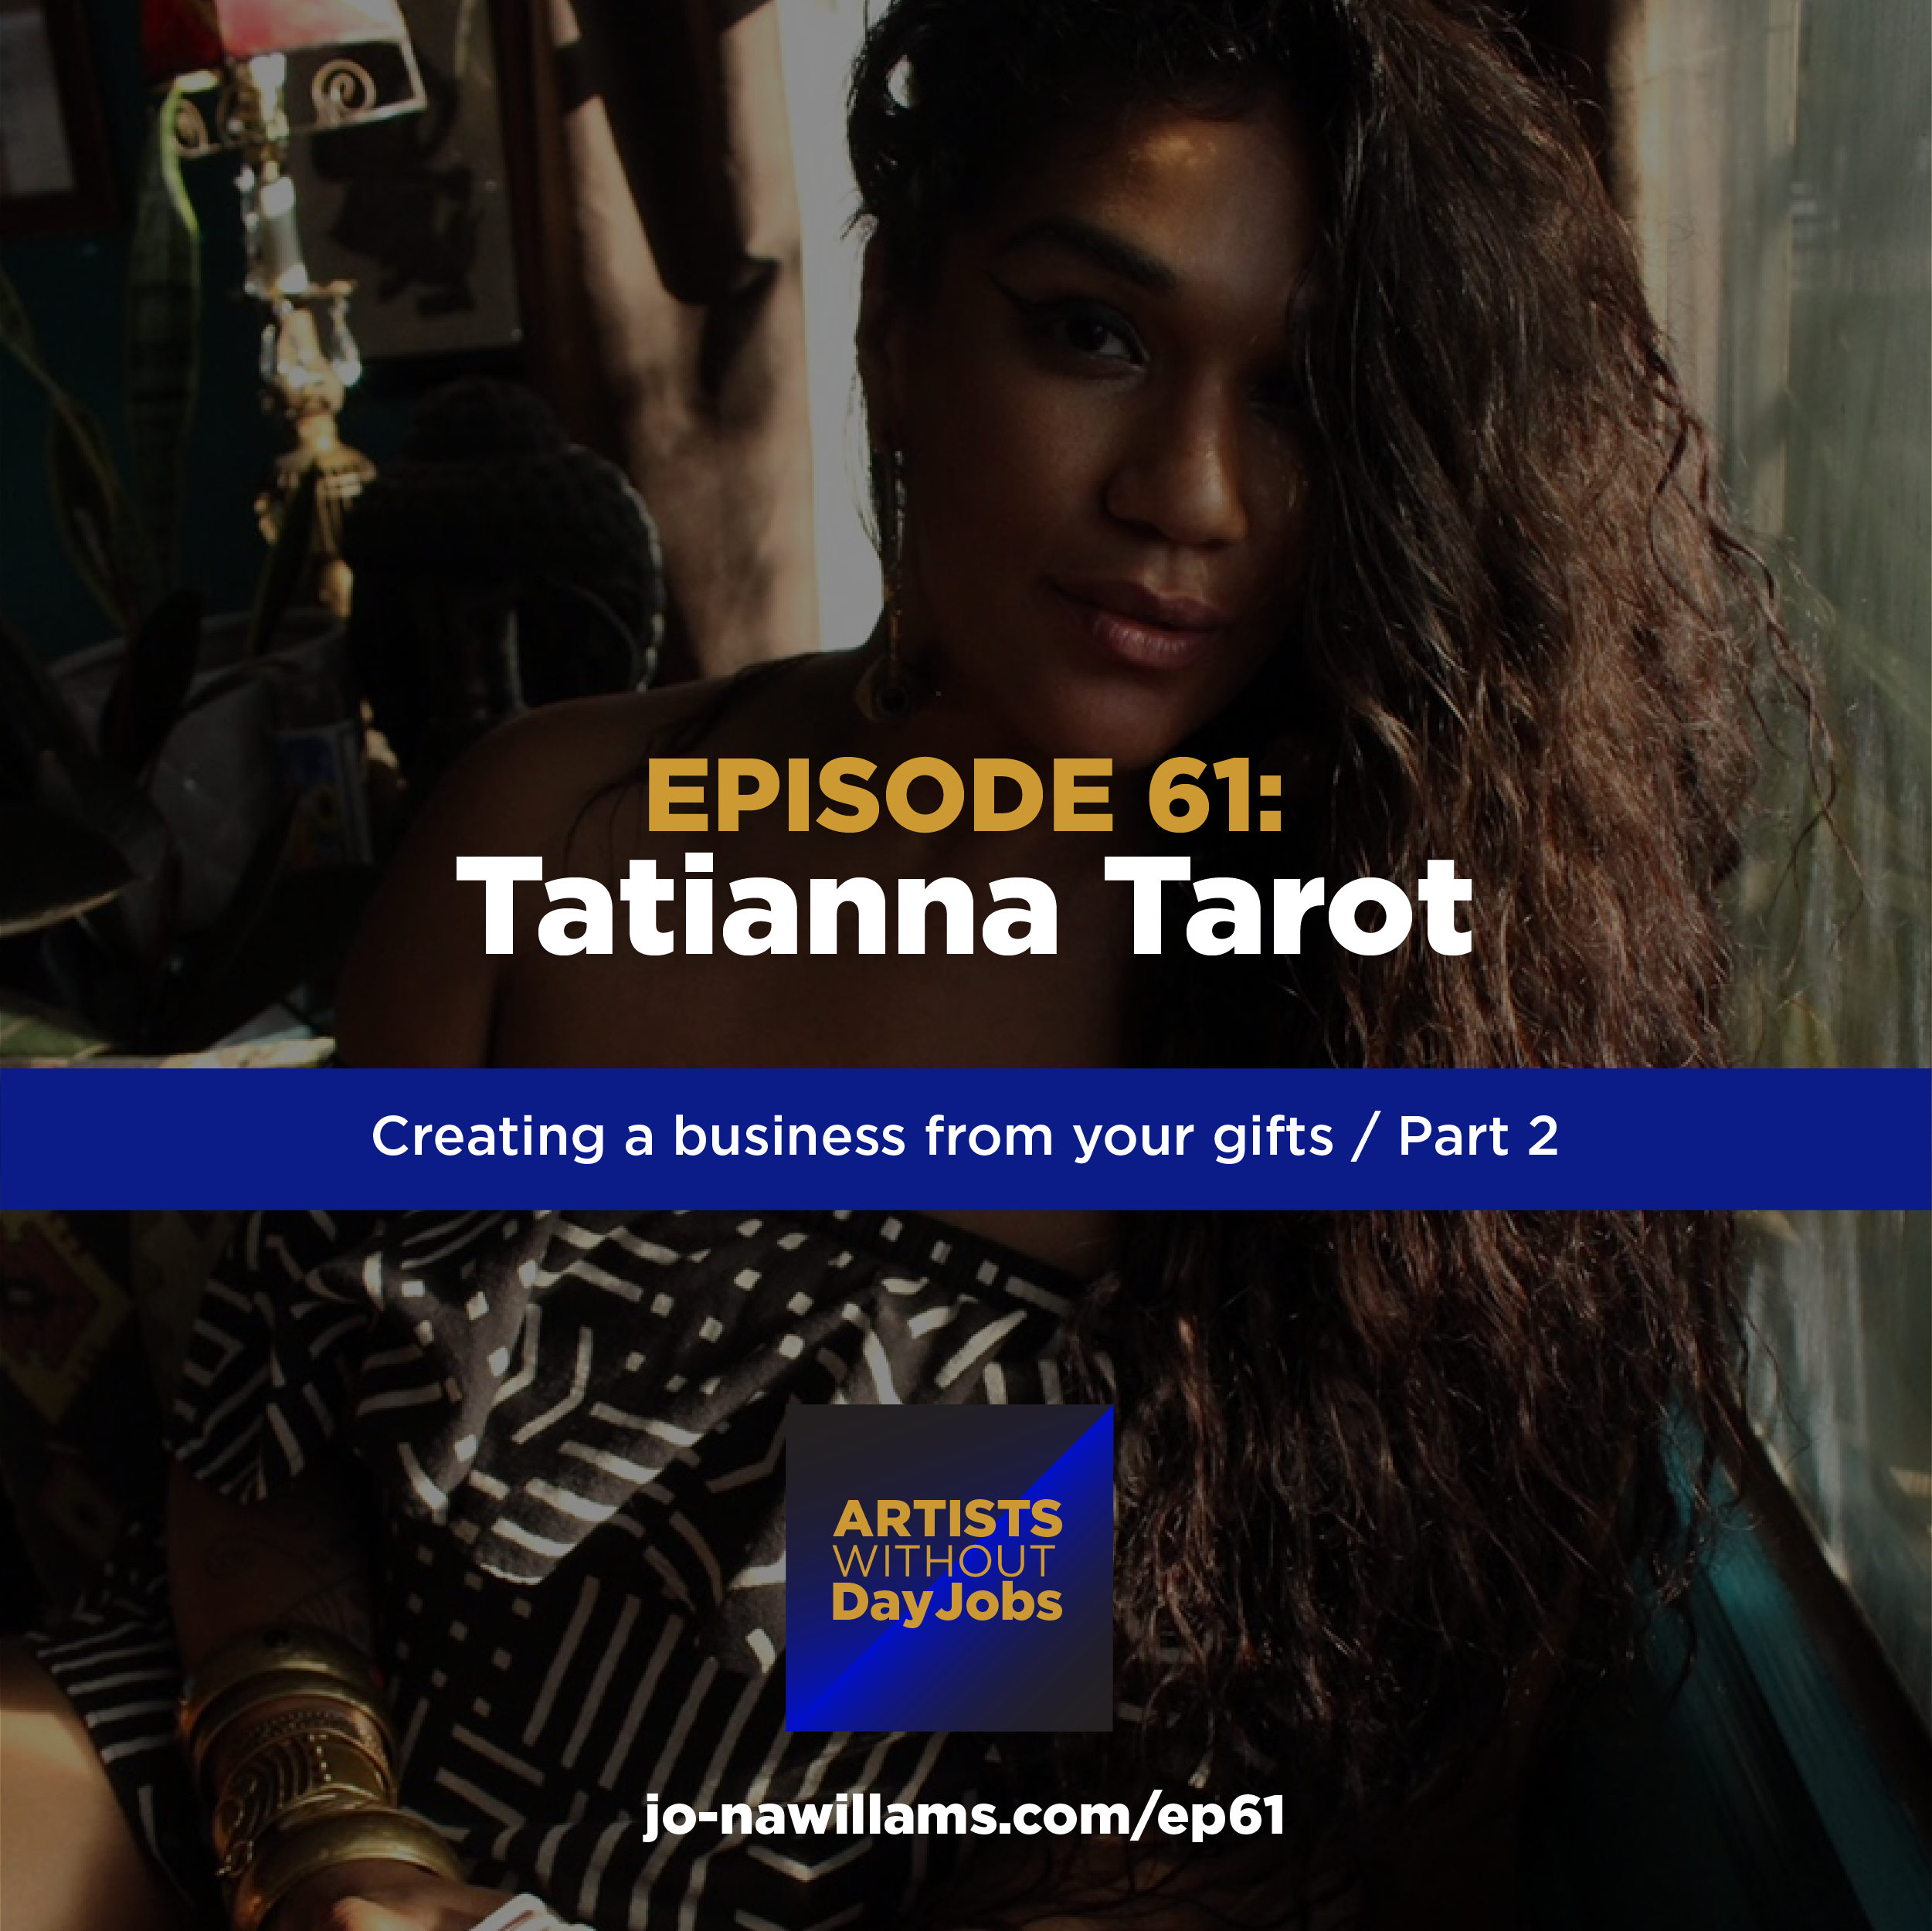 Ep 61: Building a business from your gifts w/ Tatianna Tarot, Pt. 2